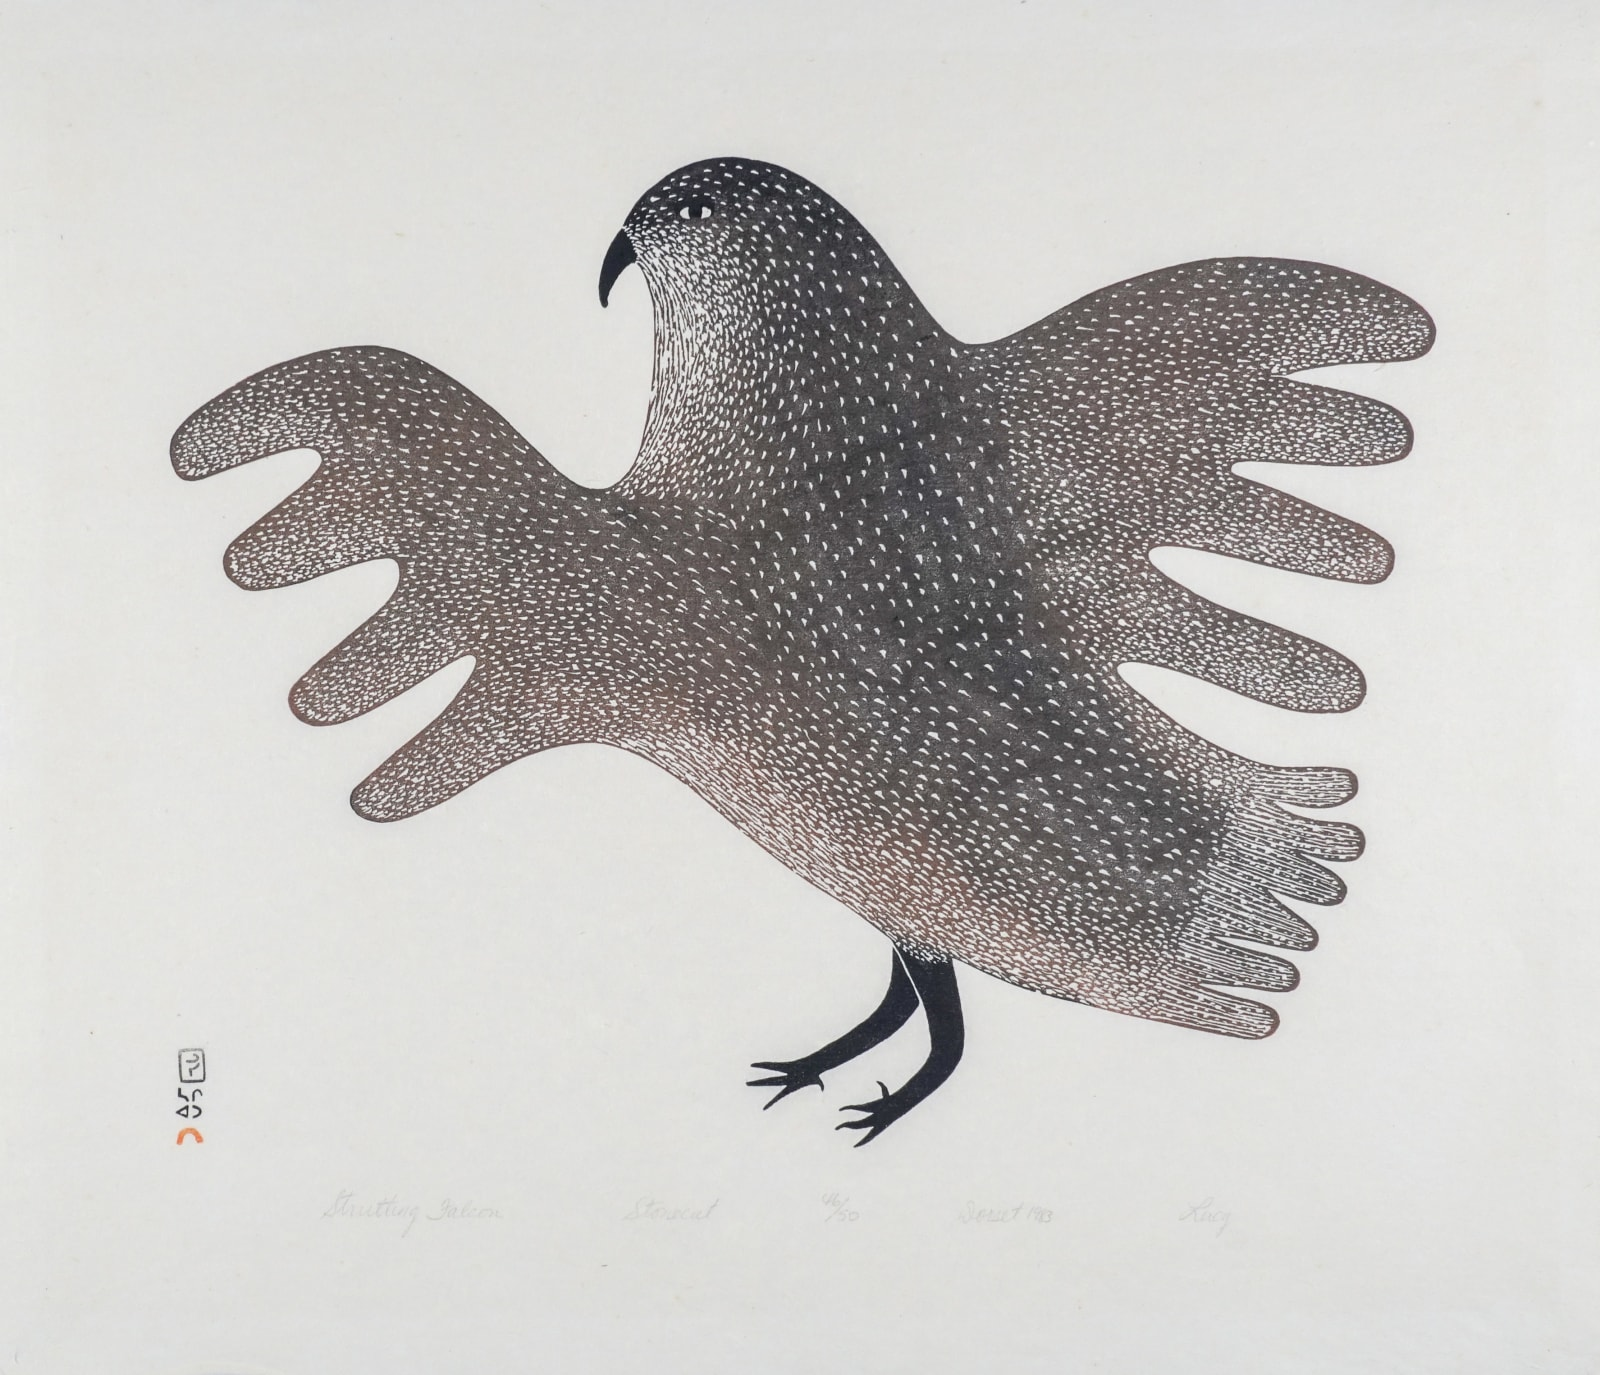 LOT 41 LUCY QINNUAYUAK (1915-1982) KINNGAIT (CAPE DORSET) Strutting Falcon, 1983 stonecut, 21 x 24 1/2 in (53.3 x 62.2 cm) ESTIMATE: $800 - $1,200